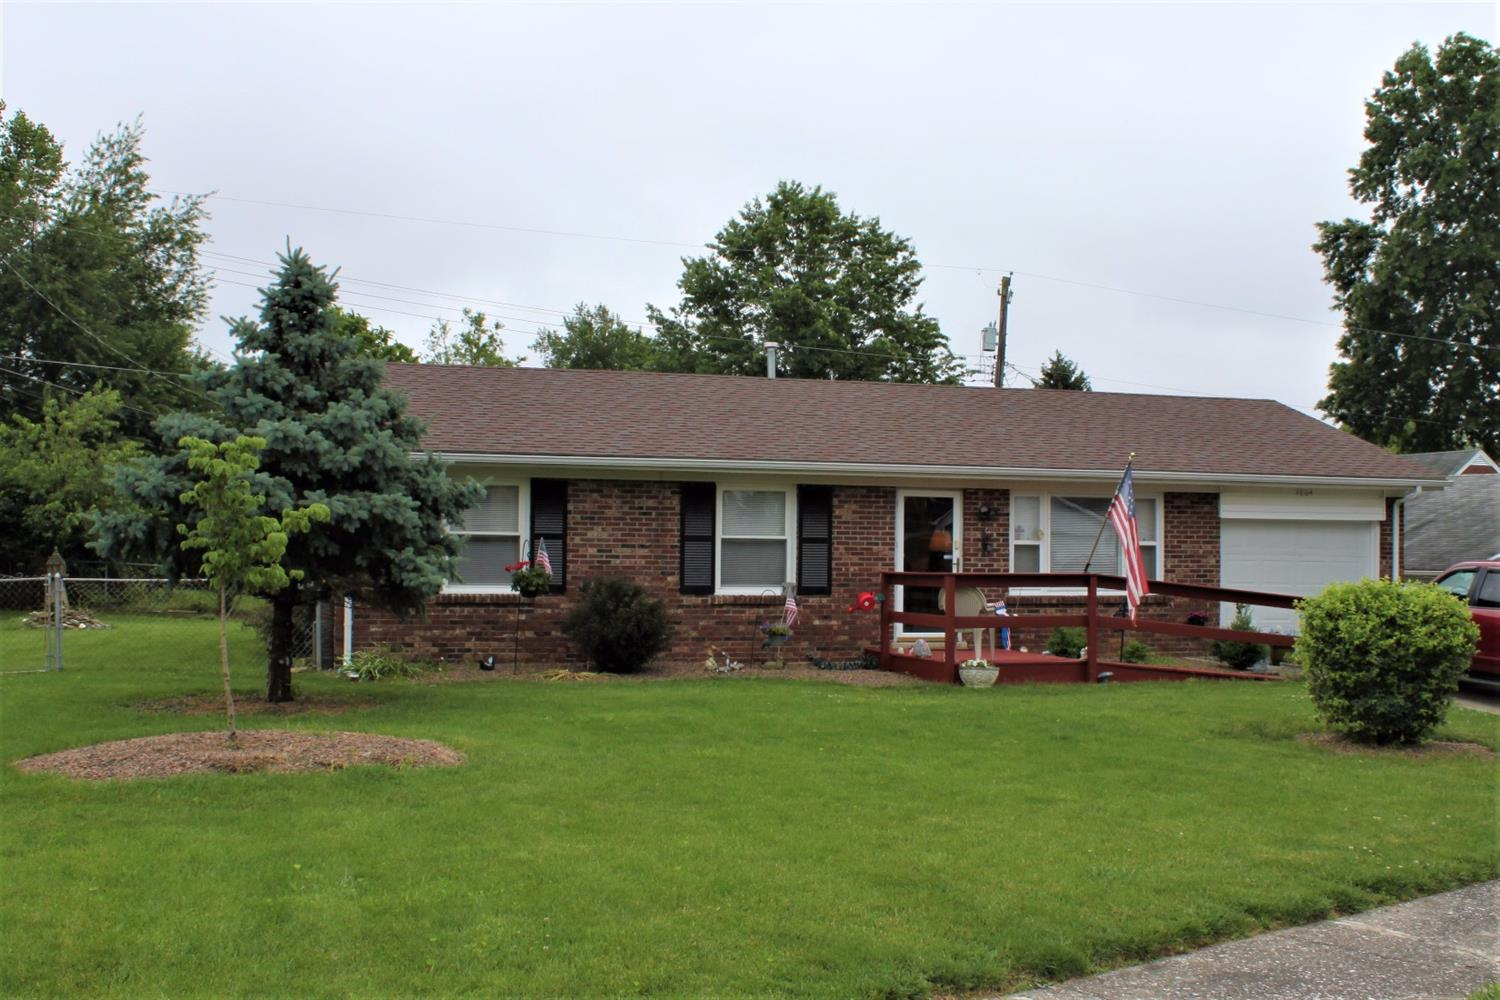 Home For Sale at 641 St Anthony Dr, Lexington, KY 40505